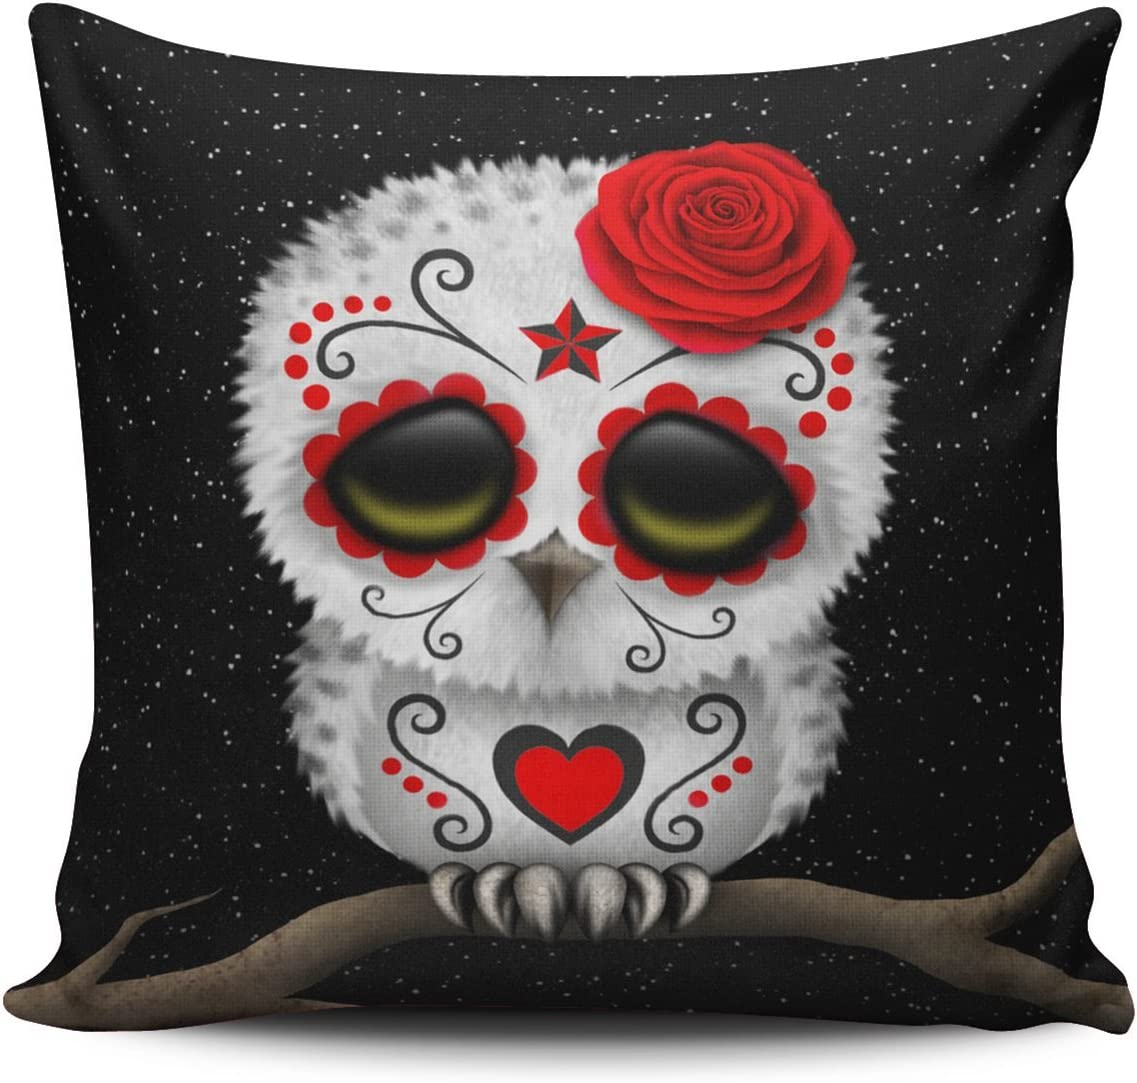 SALLEING Custom 40% OFF Cheap Sale Fashion Home Decor Pillowcase Th Cute Red Fixed price for sale Day of